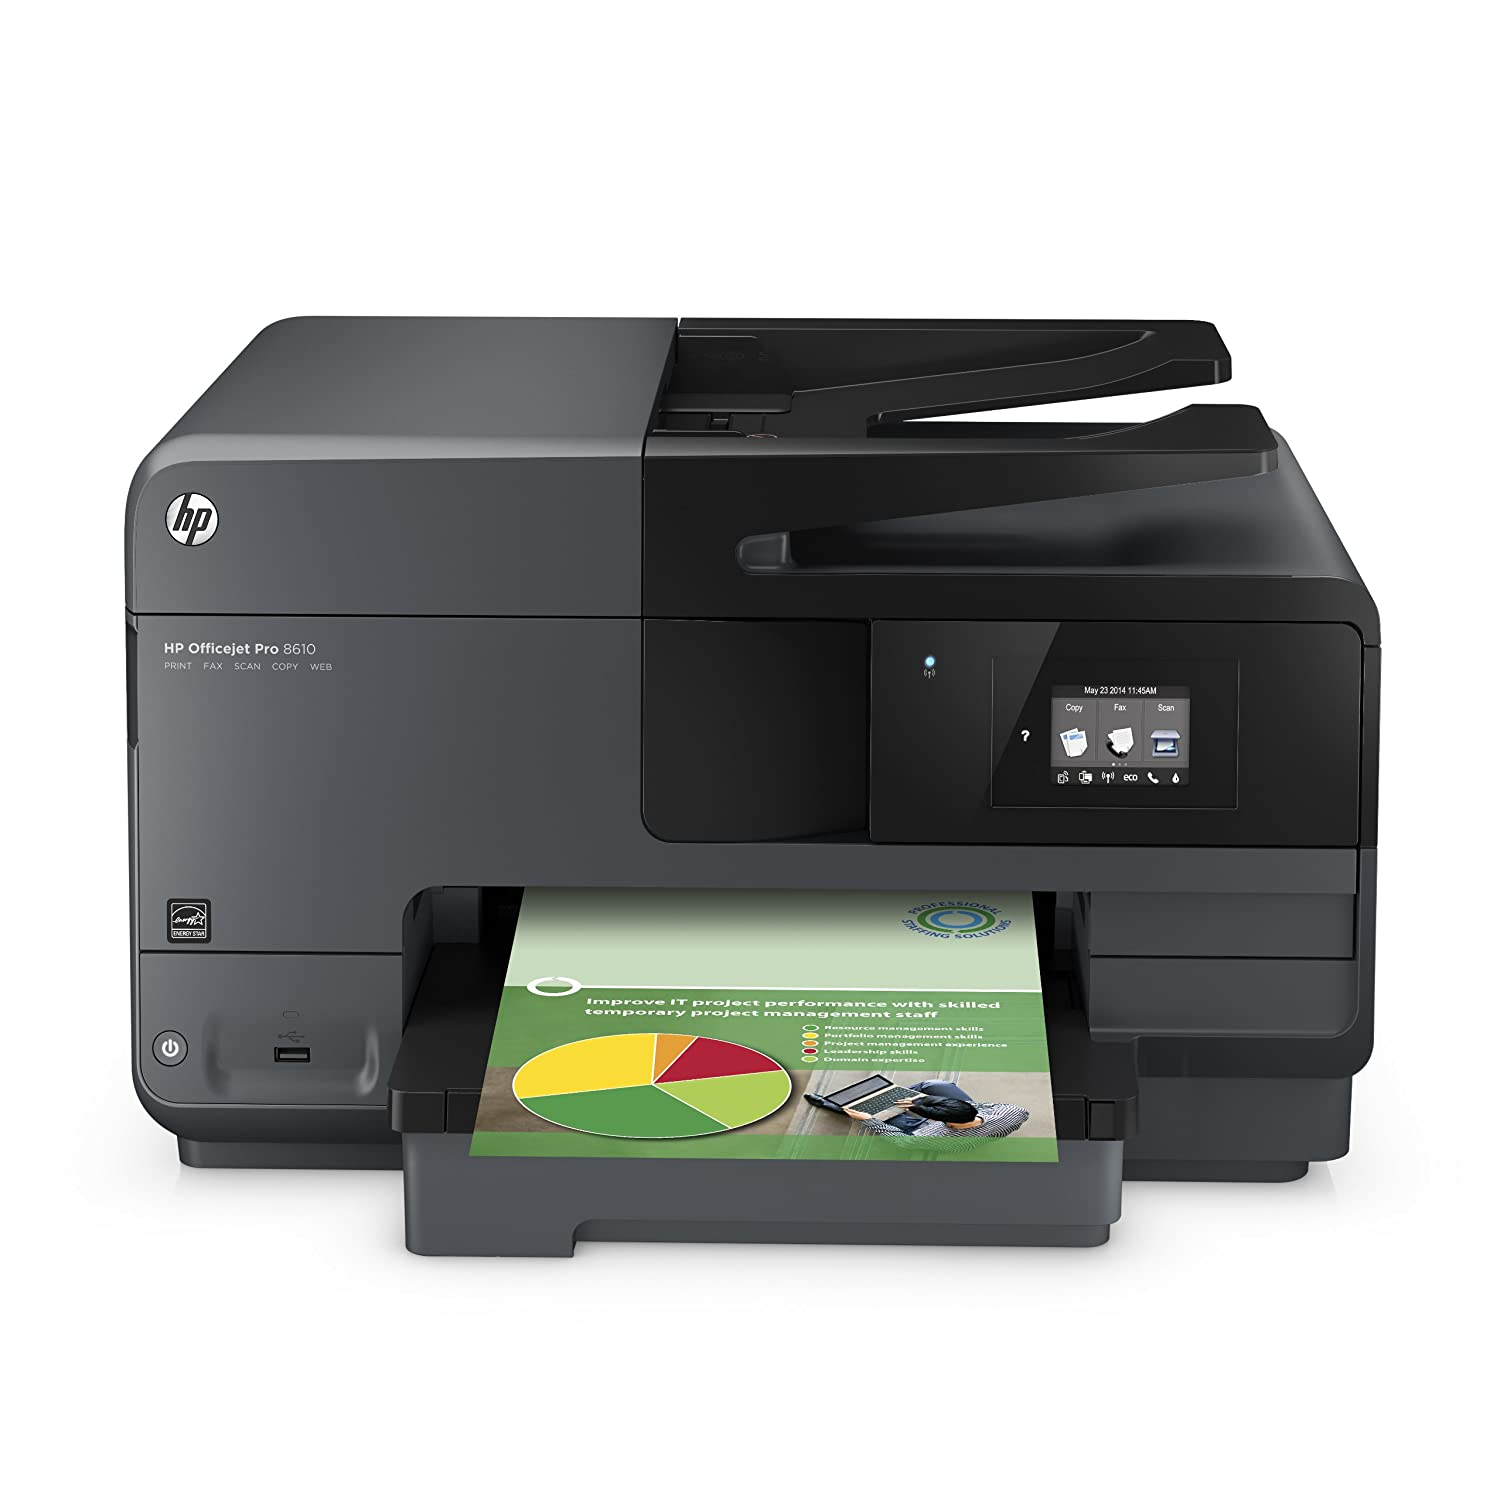 Amazon.com: HP OfficeJet Pro 8610 Wireless All-in-One Photo Printer with  Mobile Printing, HP Instant Ink & Amazon Dash Replenishment ready (A7F64A)  ...